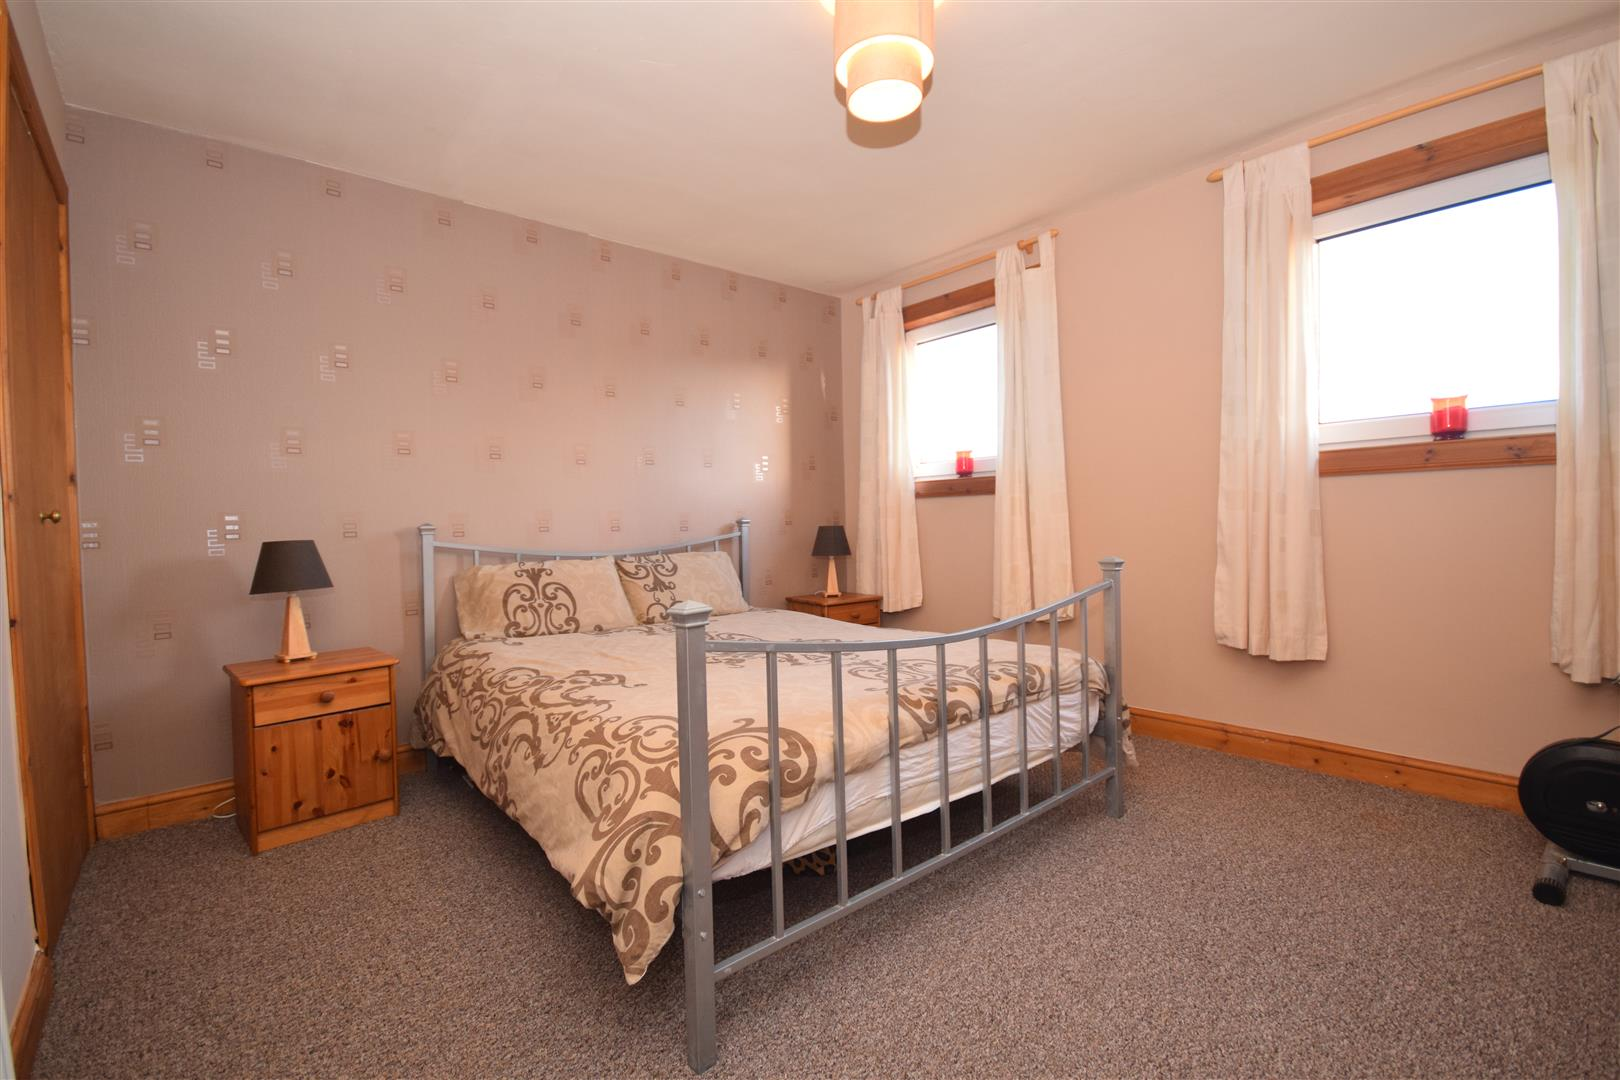 8, Cairns Place, Perth, Perthshire, PH1 2PL, UK